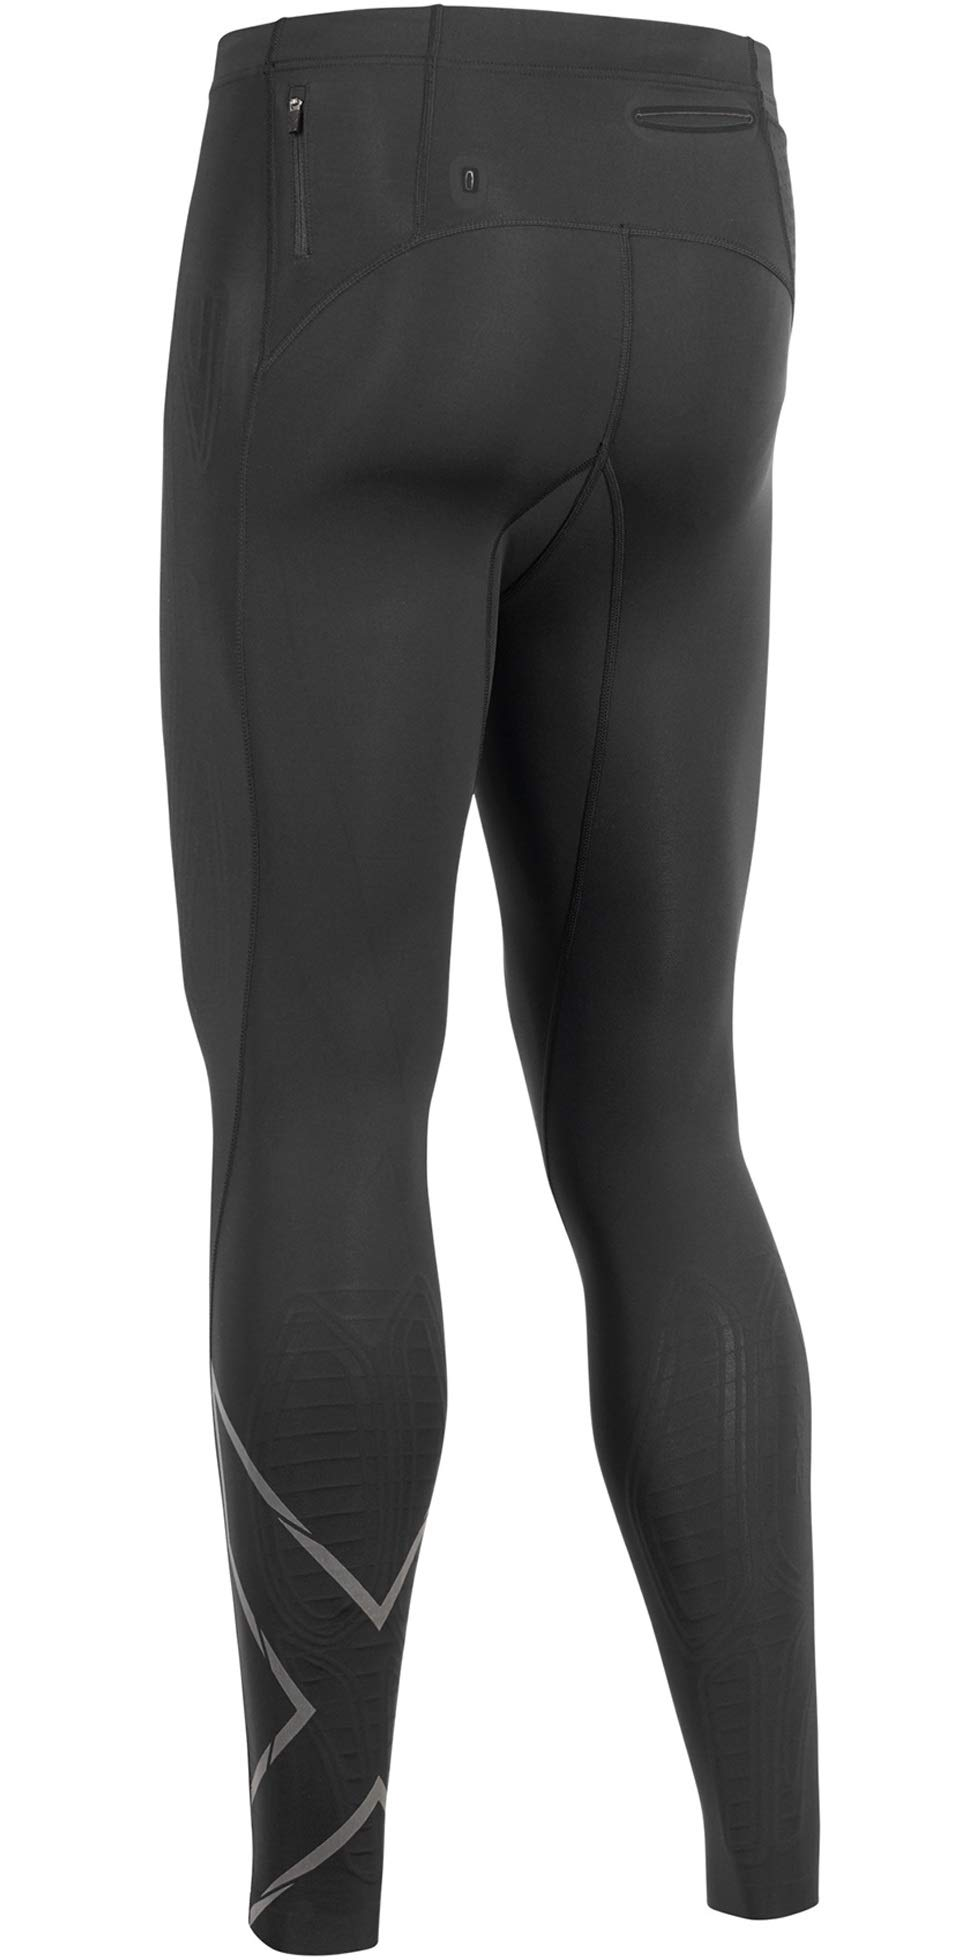 2XU MCS Run Compression Tight, Black/Black Reflective, Medium by 2XU (Image #2)